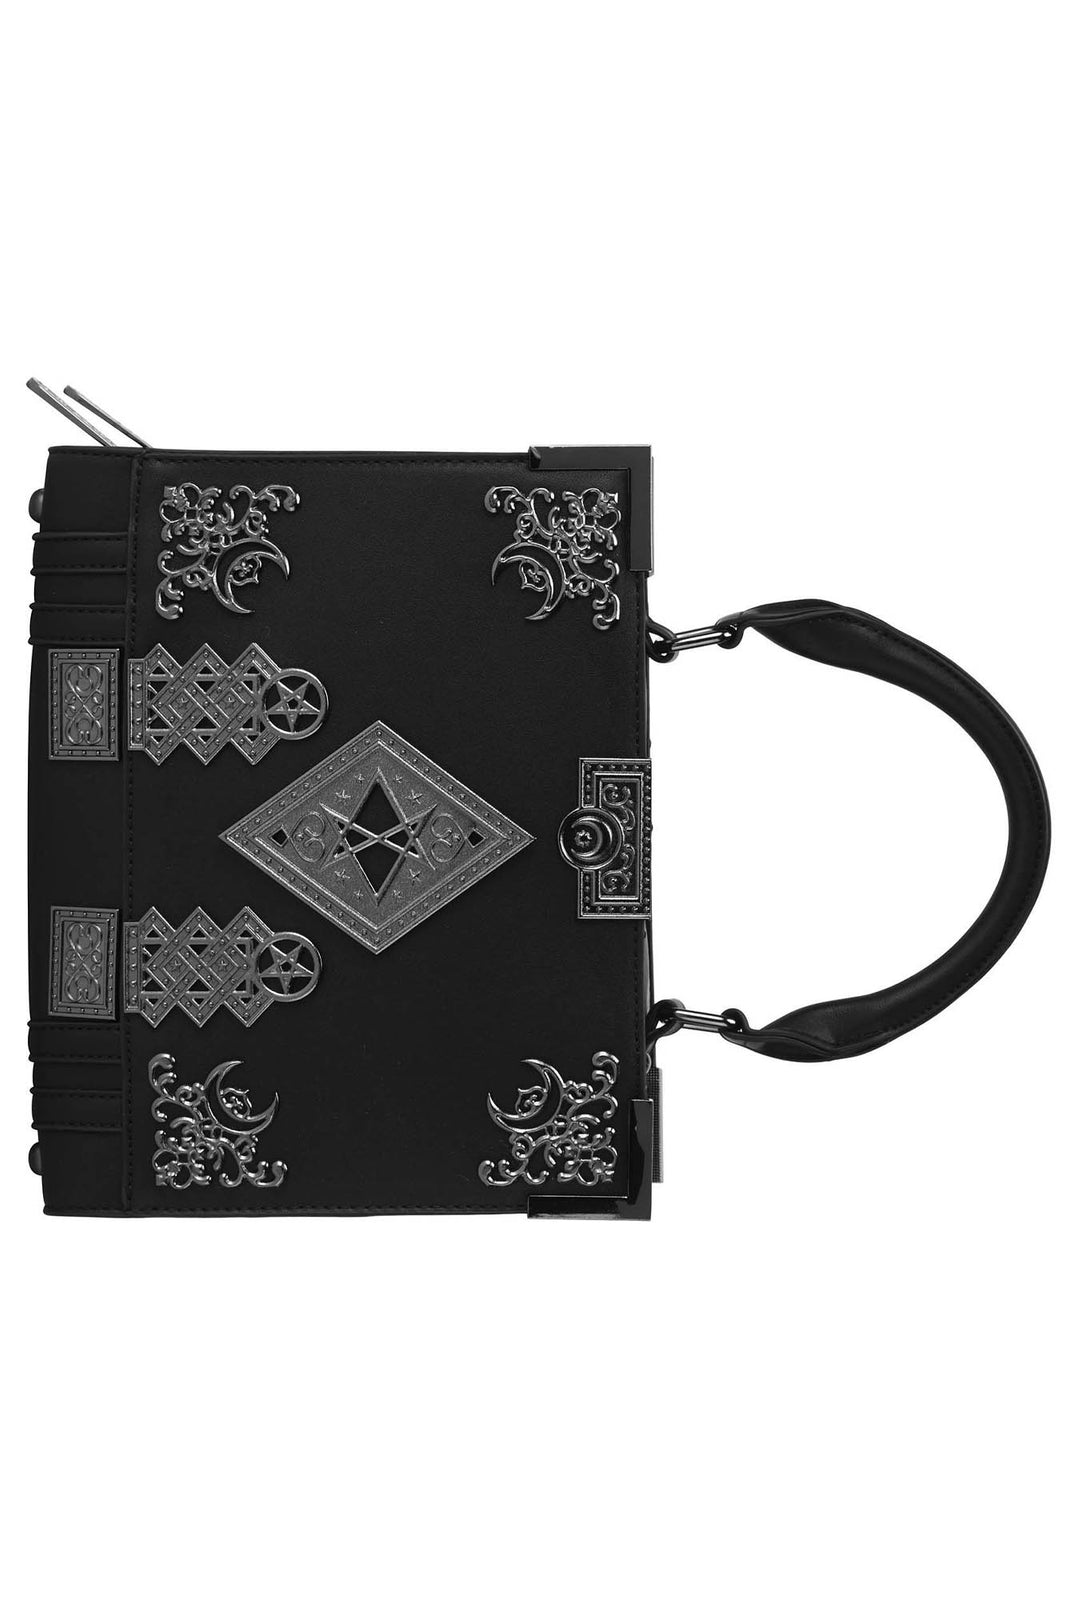 Book Of Shadows Handbag